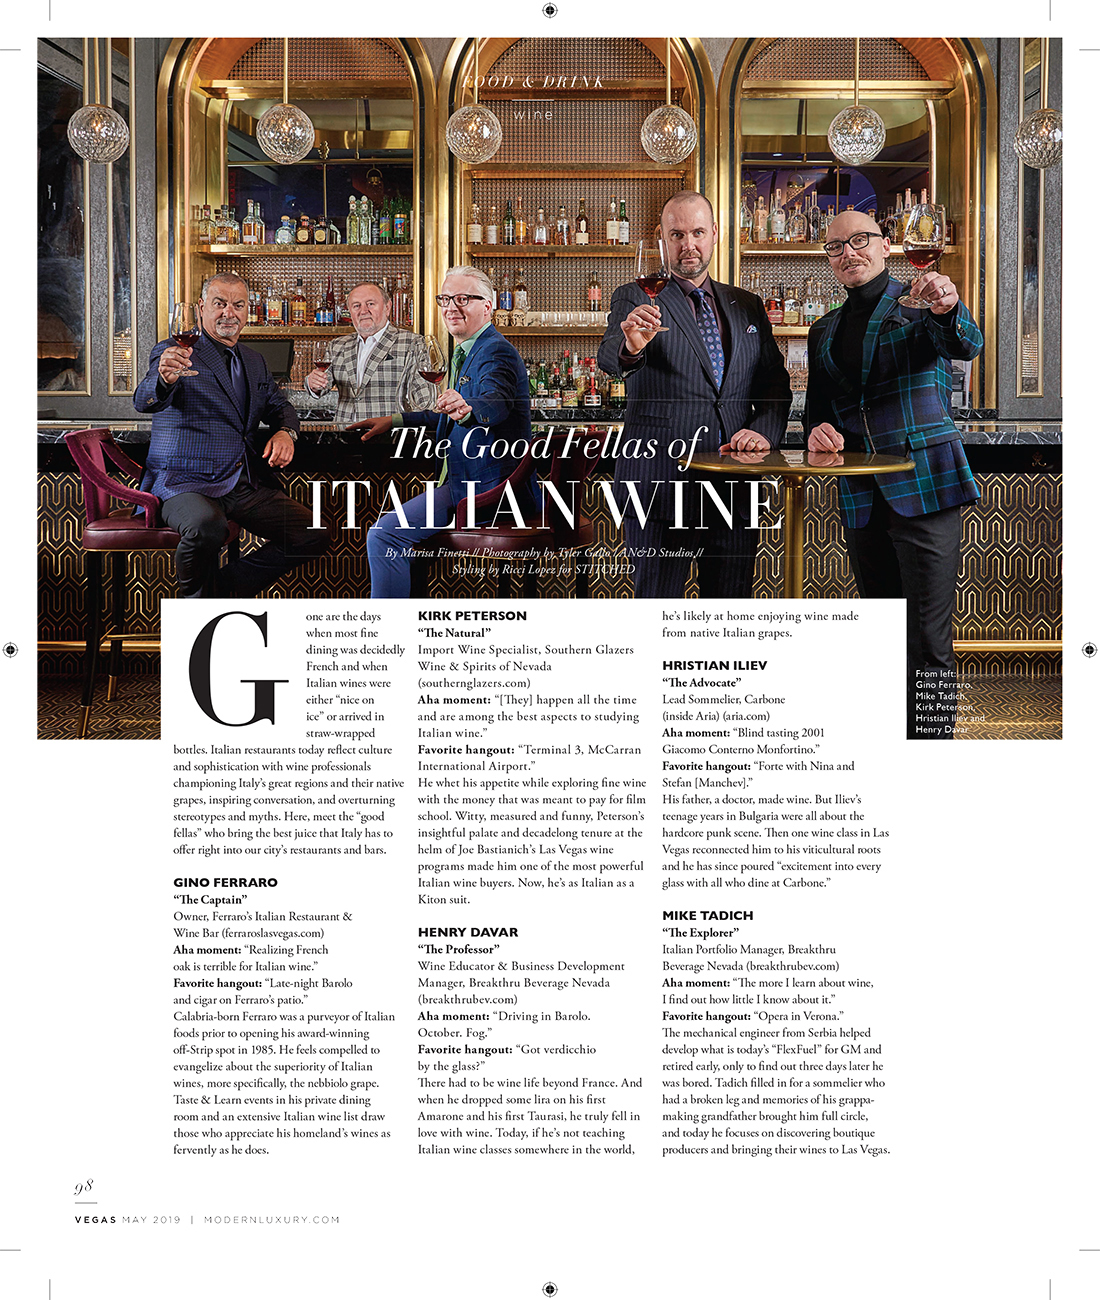 VEGAS MAGAZINE | THE GOODFELLAS OF ITALIAN WINE | MAY 2019